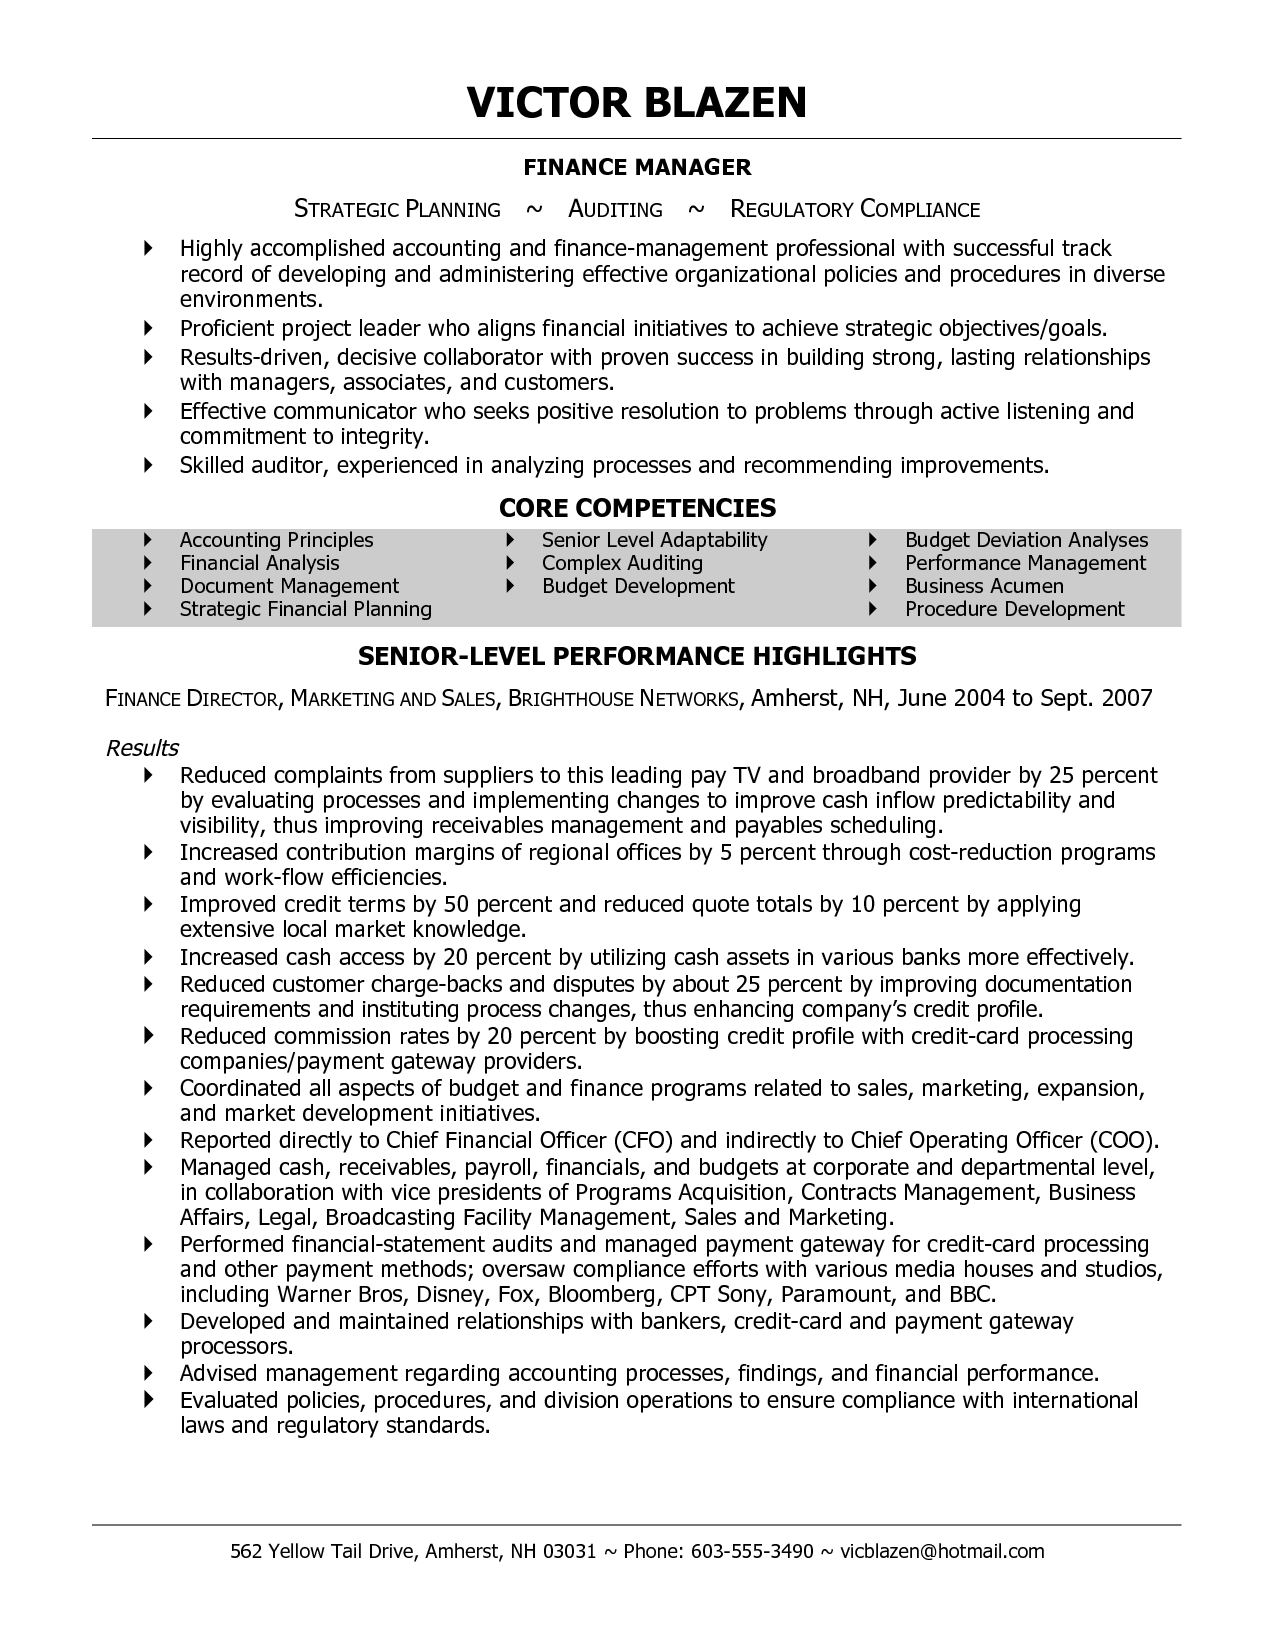 Senior Financial Analyst Resume Don't Hesitate When It Comes To Replacing Your Shinglesreplacing